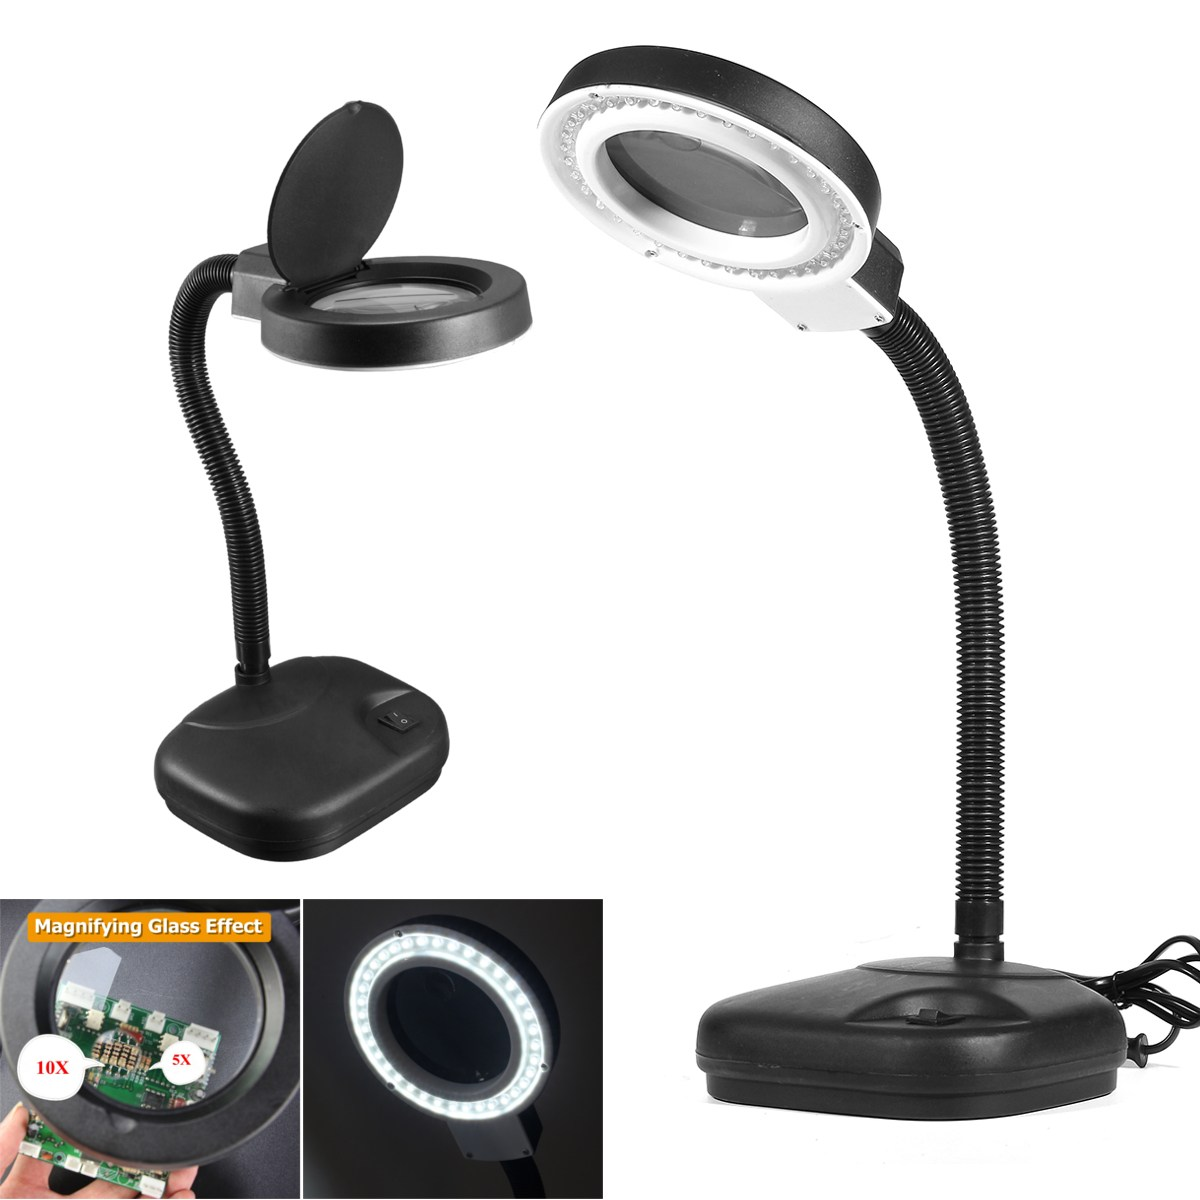 40 LED Multi-function Desktop Magnifying Lamp 5X 10X Magnifier LED Desk Light Daylight Craft Glass Table Lamp le100 multi function desktop socket countertop manual flip table plug multimedia interface